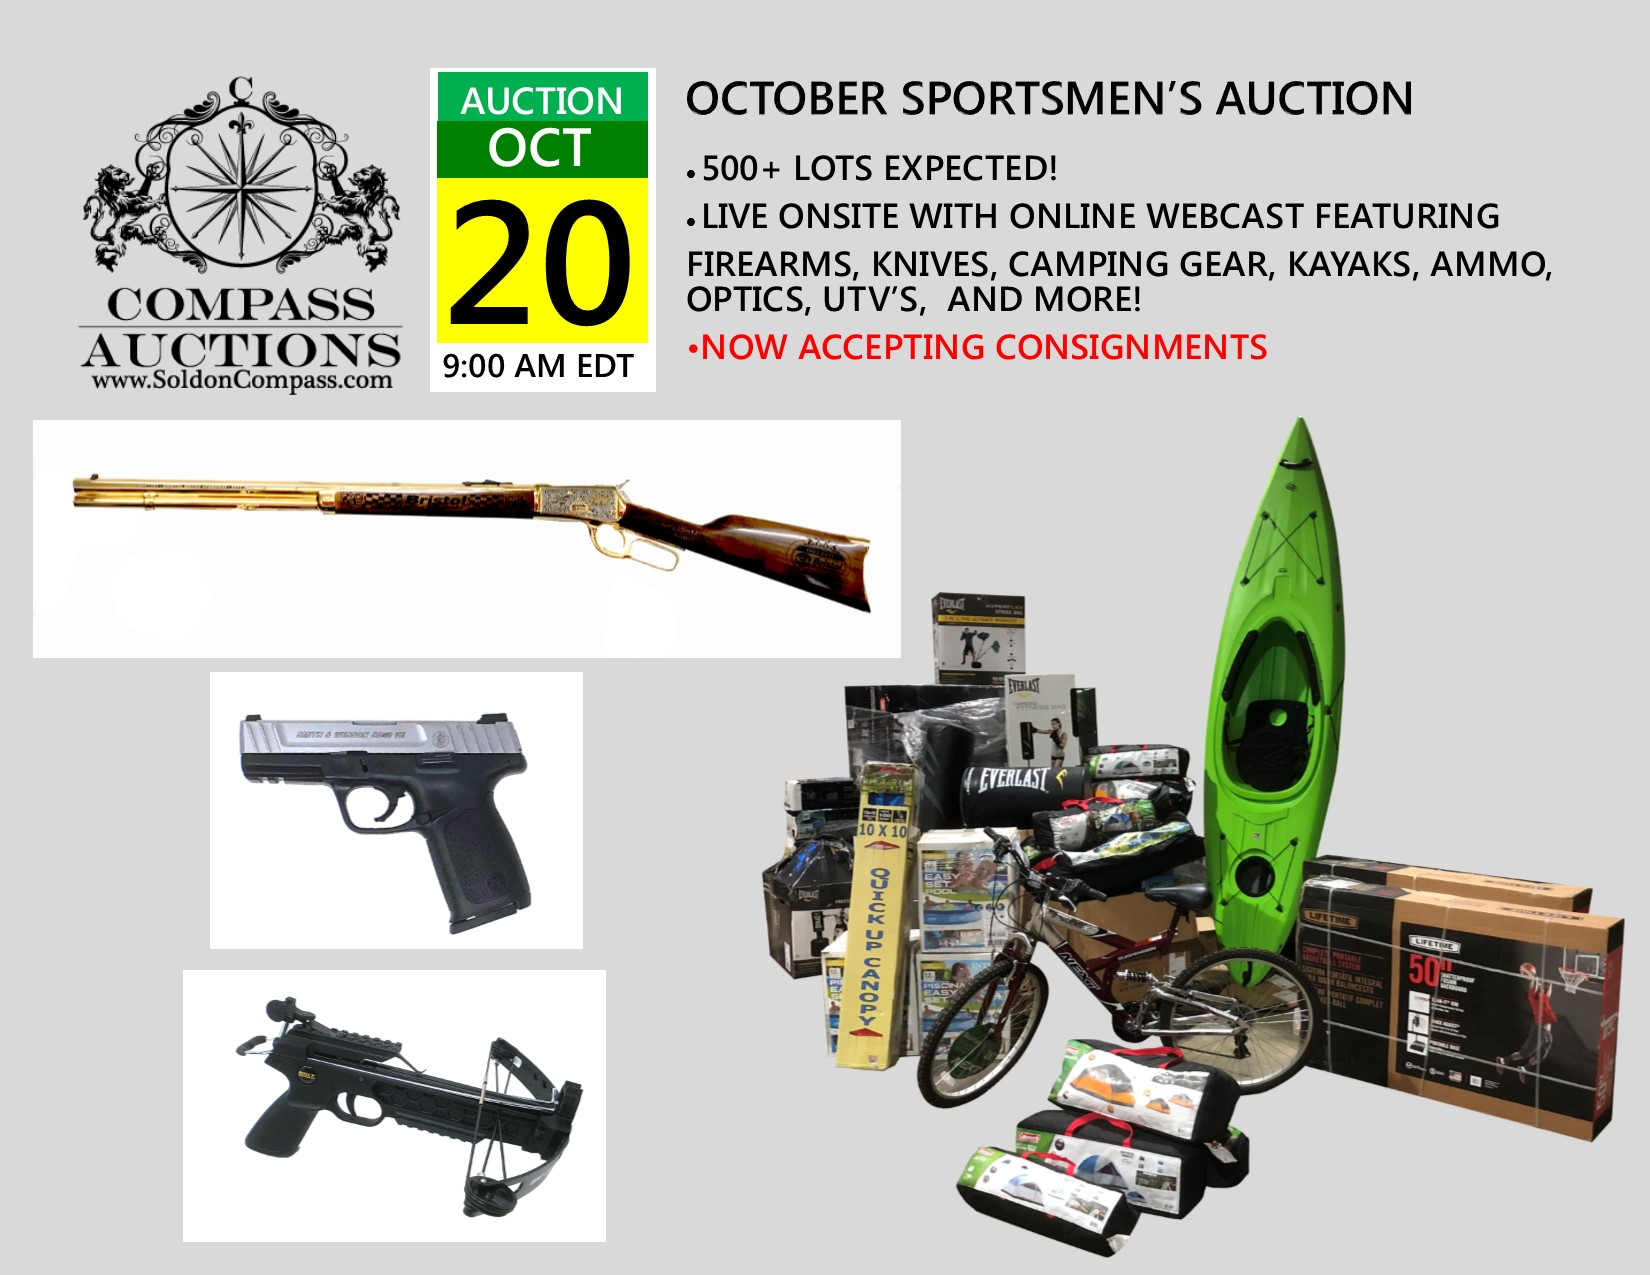 OCTOBER SPORTSMENS FIREARMS UTV SPORTING CAMPING GEAR COMPASS AUCTIONS